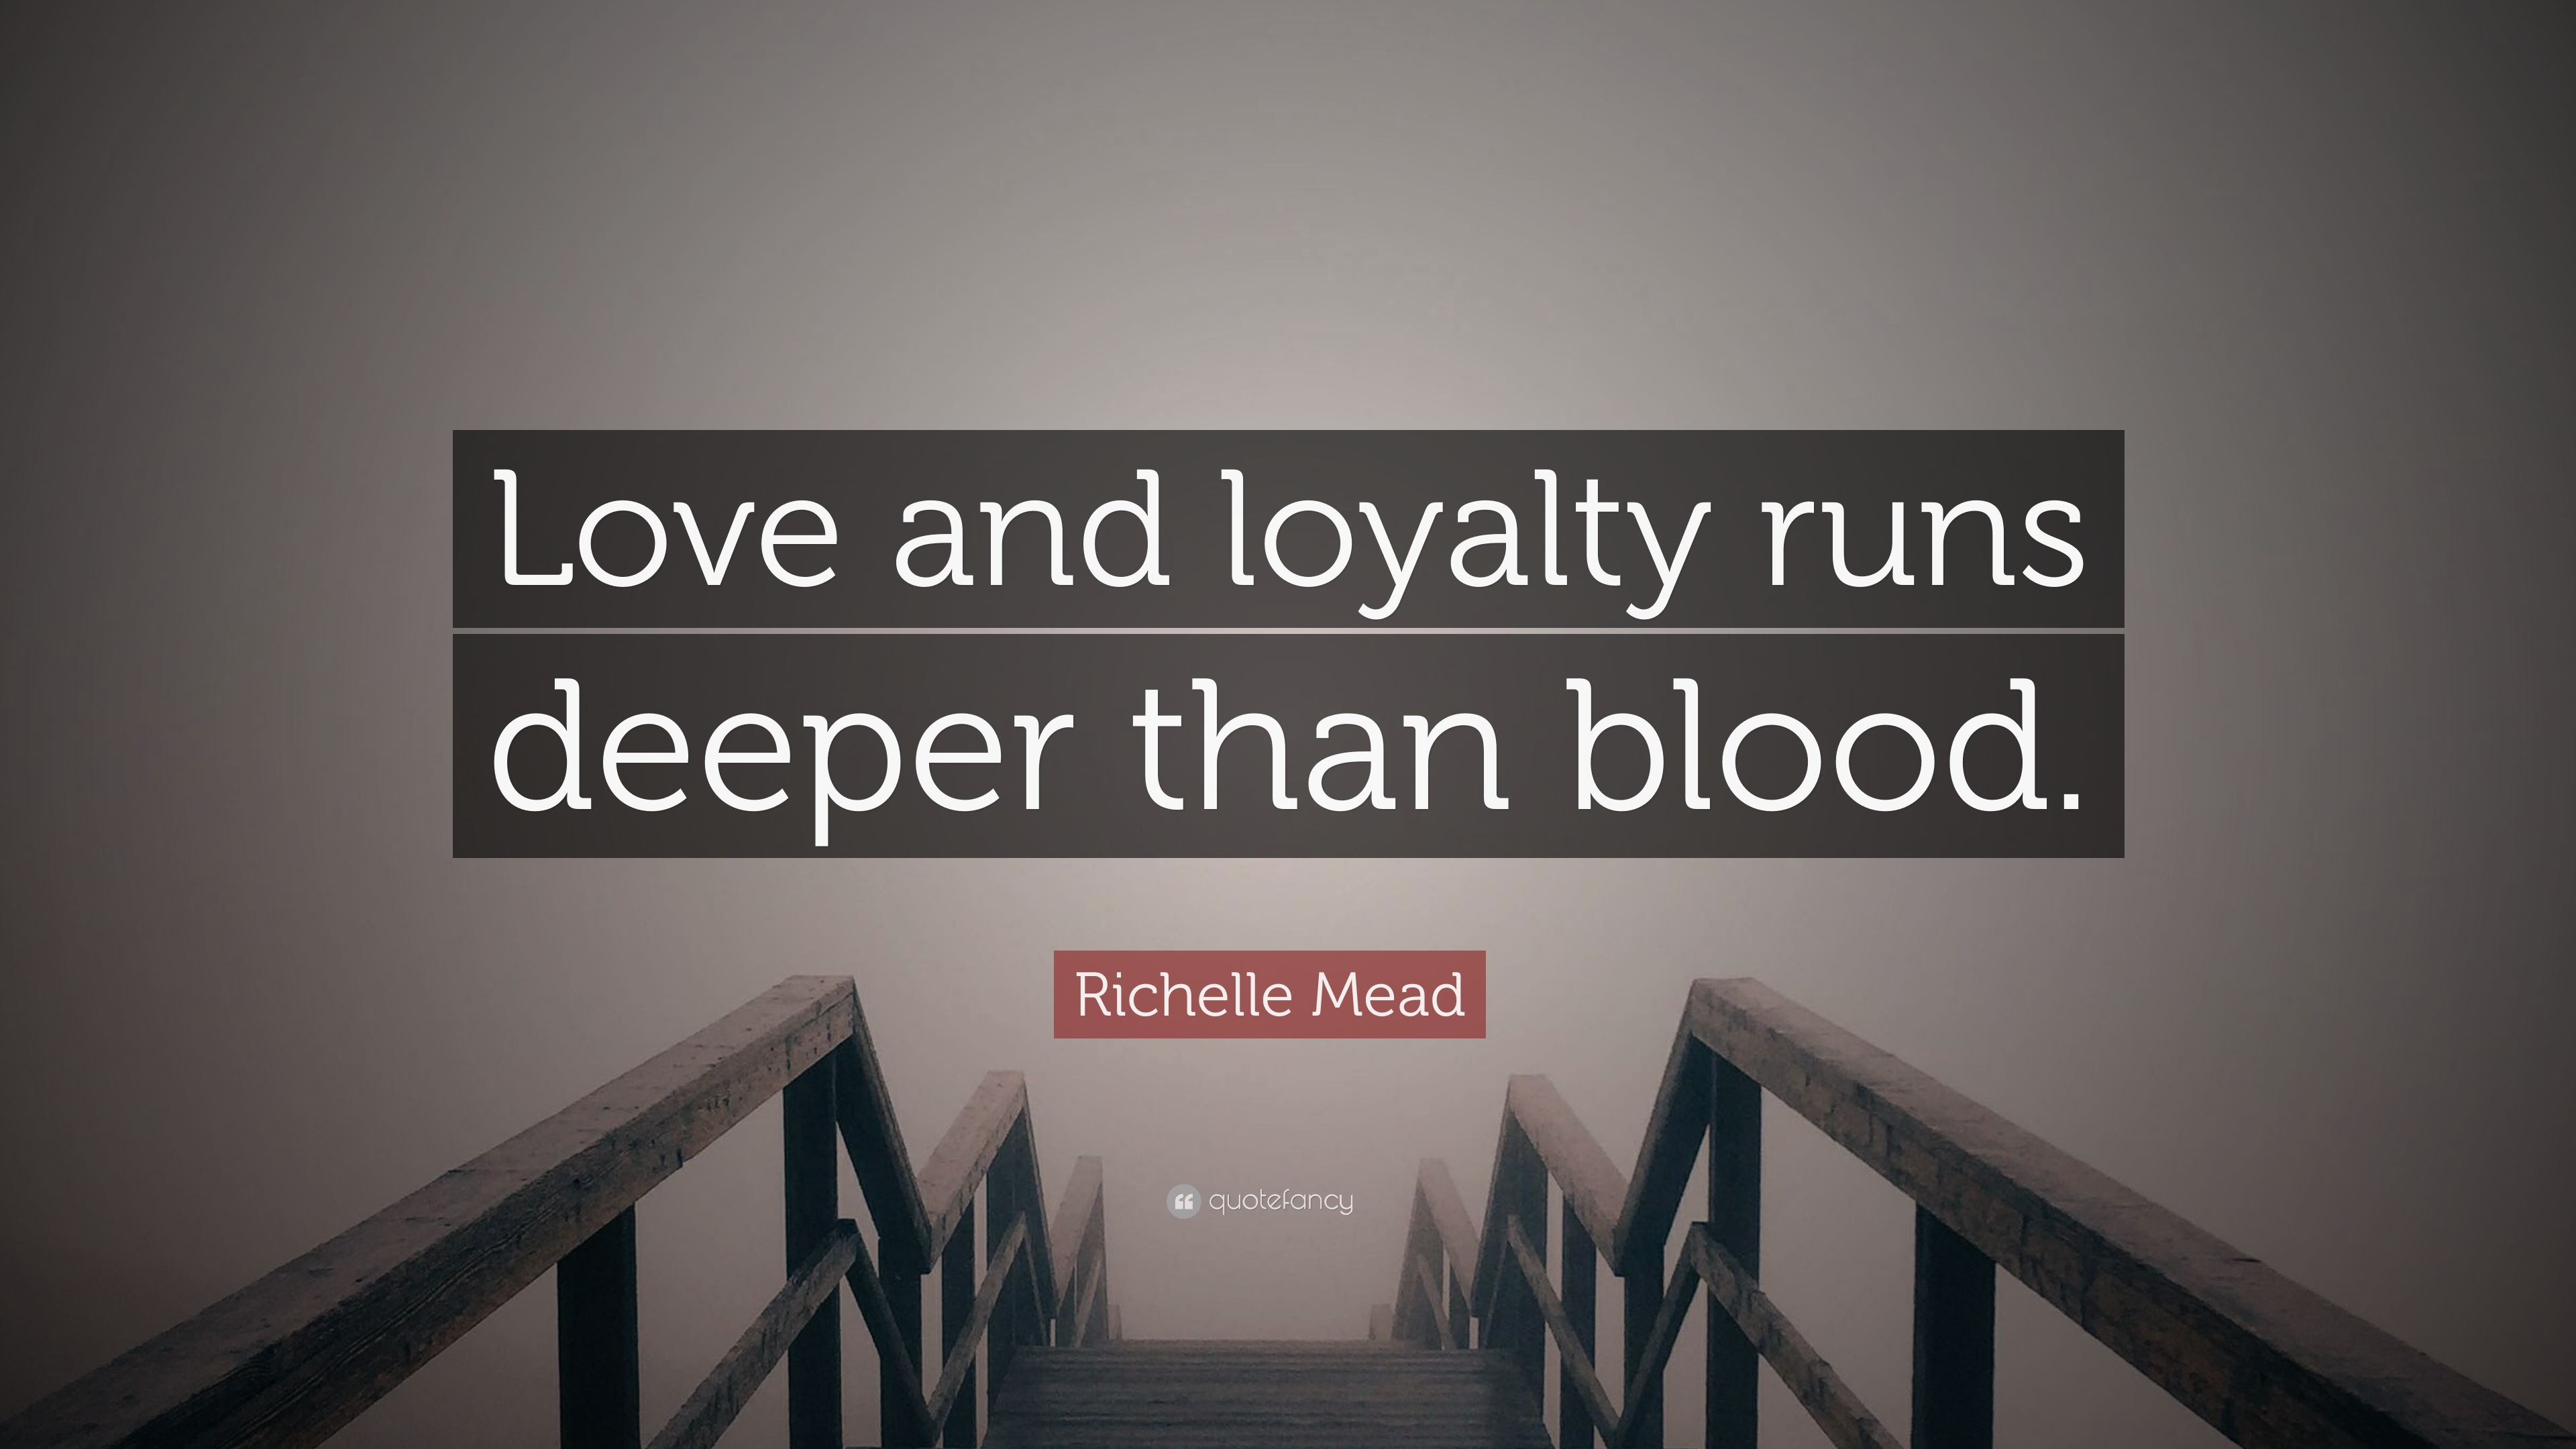 Designs quotes about loyalty quotes about loyalty quotes about loyalty - Richelle Mead Quote Love And Loyalty Runs Deeper Than Blood